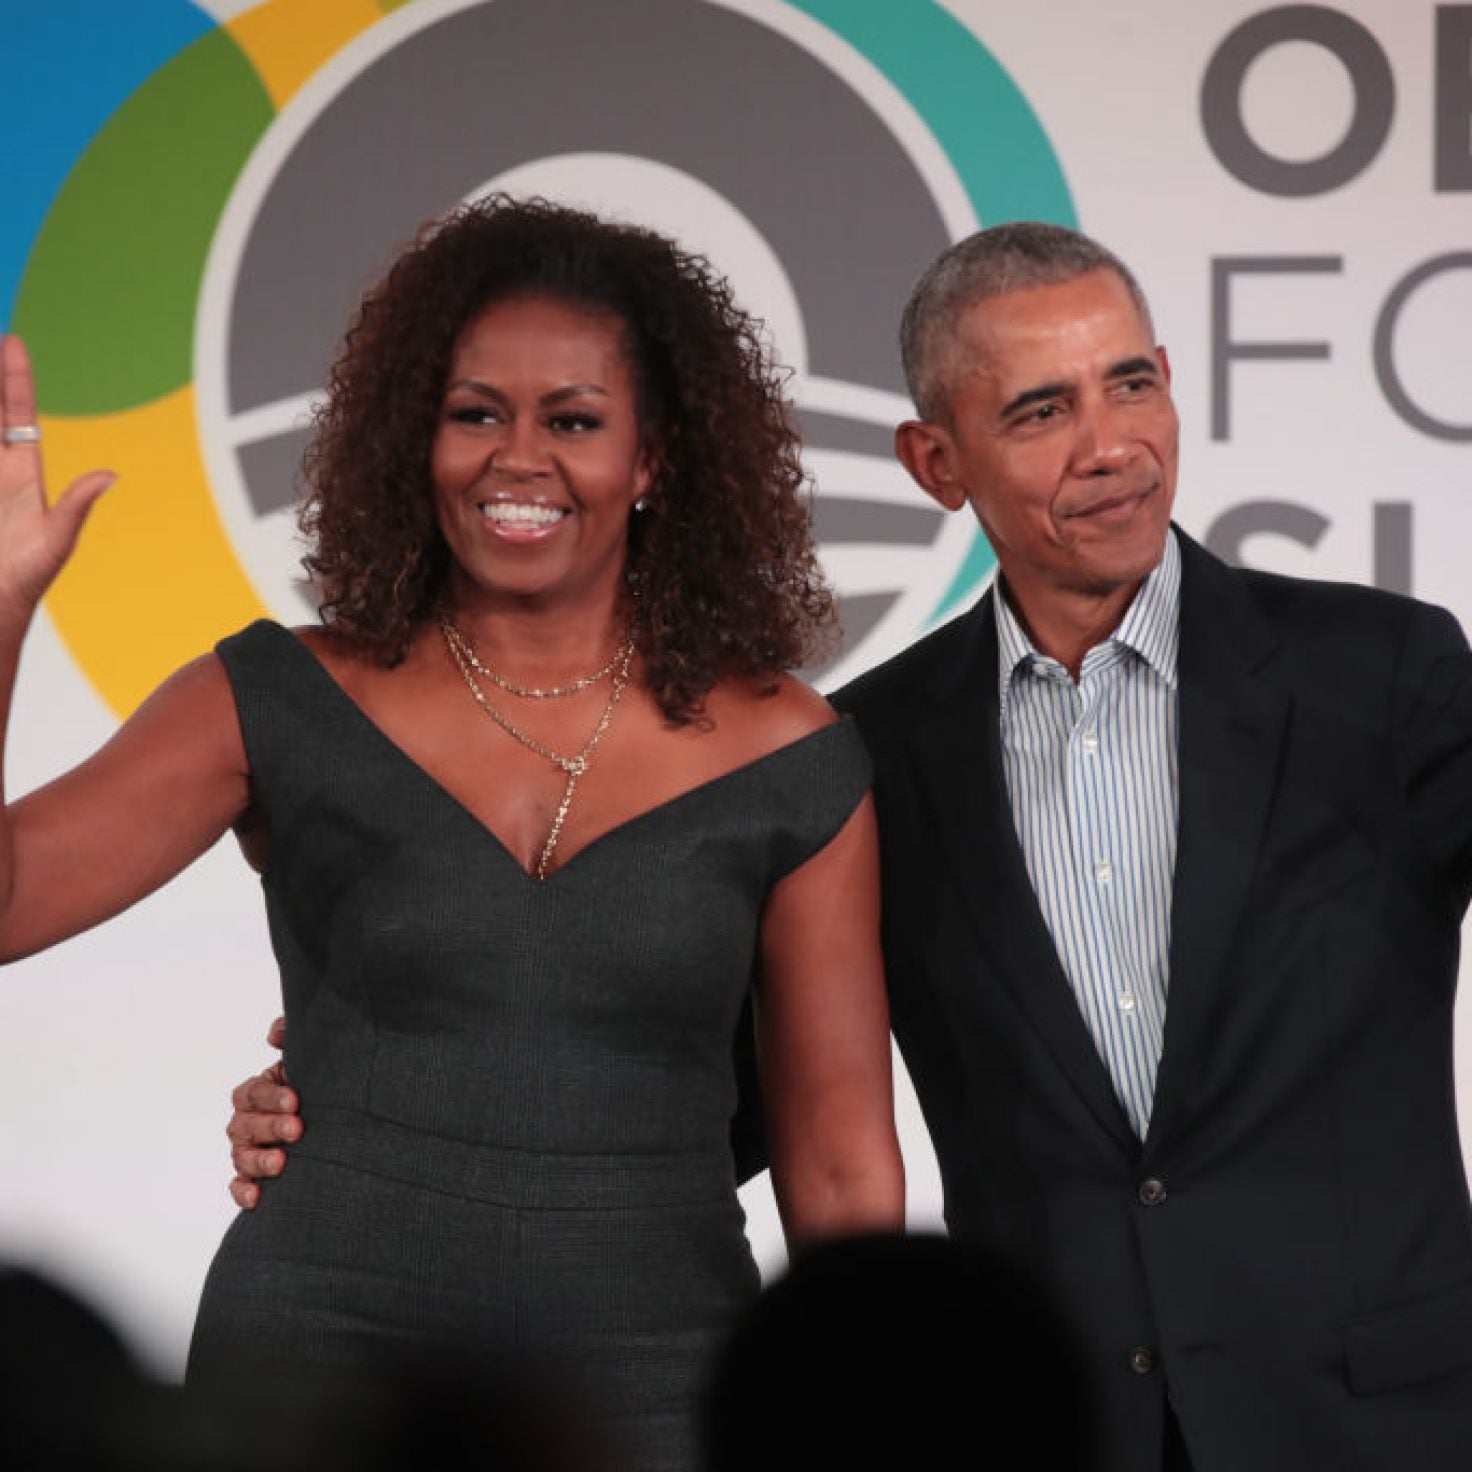 Barack and Michelle Obama To Give Virtual Commencement Address To Graduating Seniors